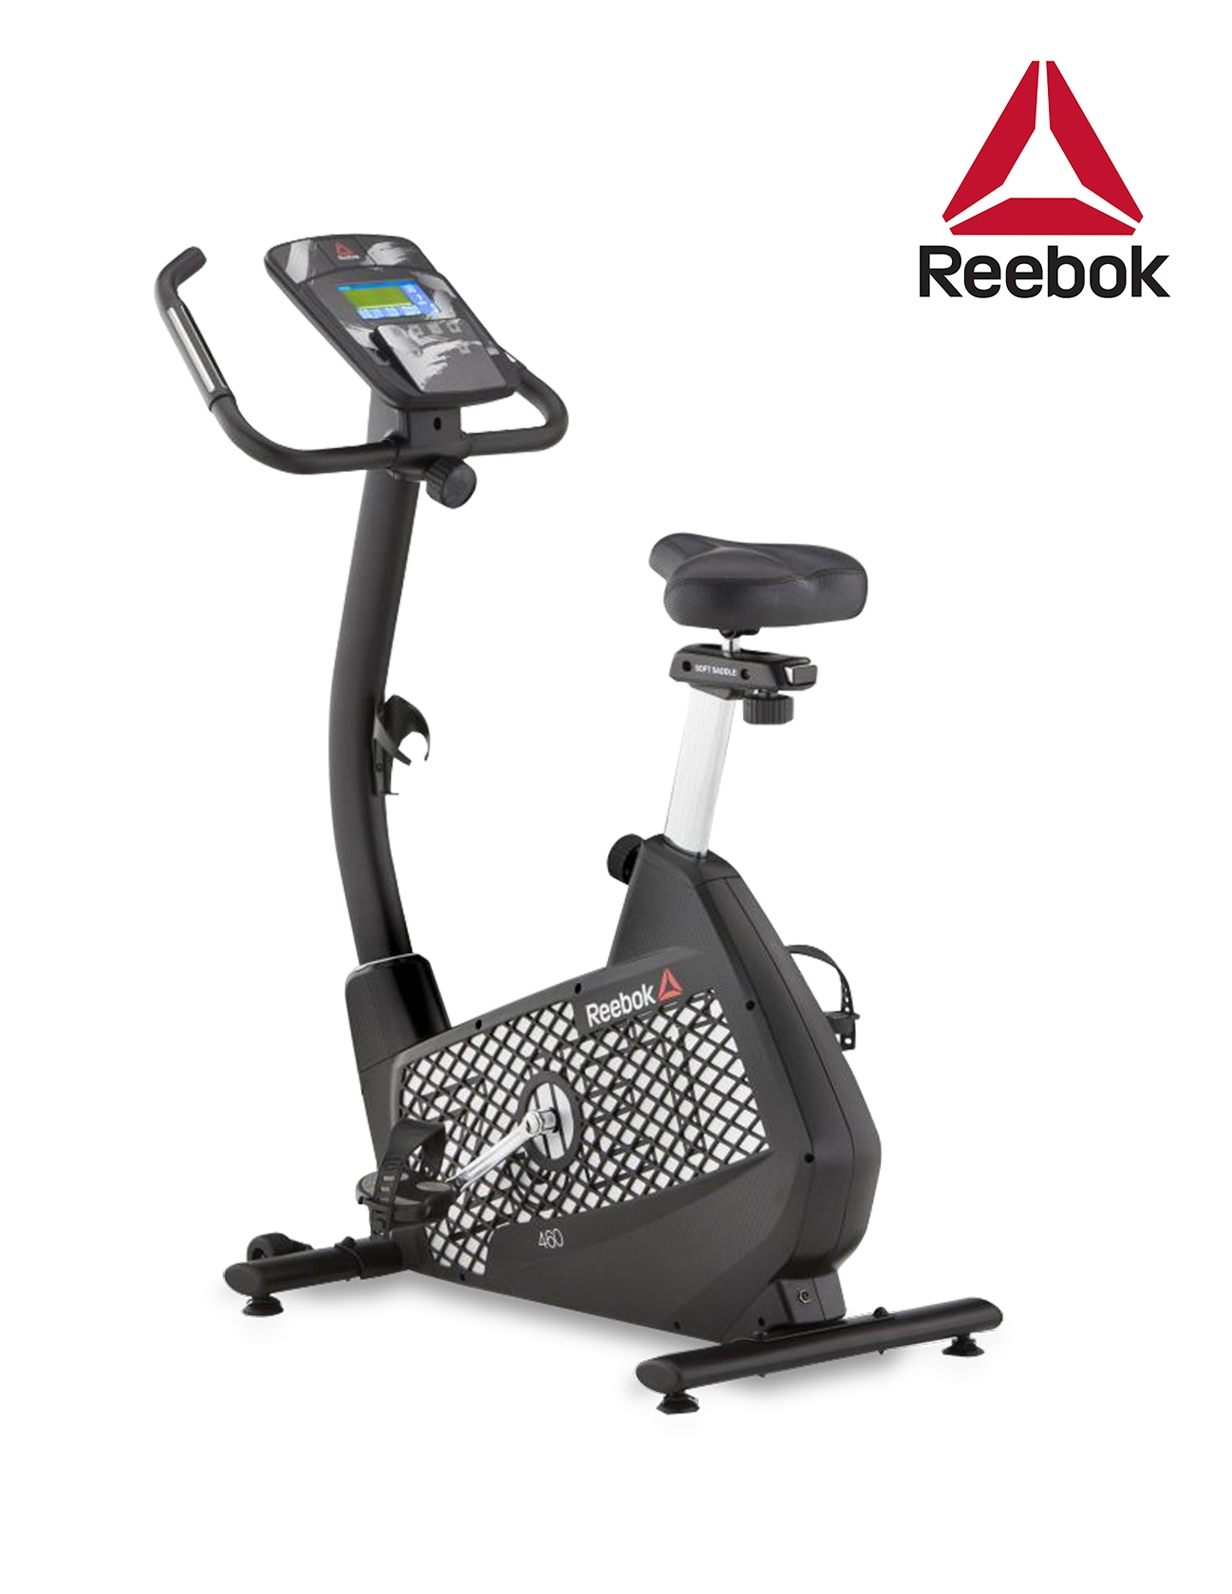 ZJET 460 REEBOK UPRIGHT BIKE